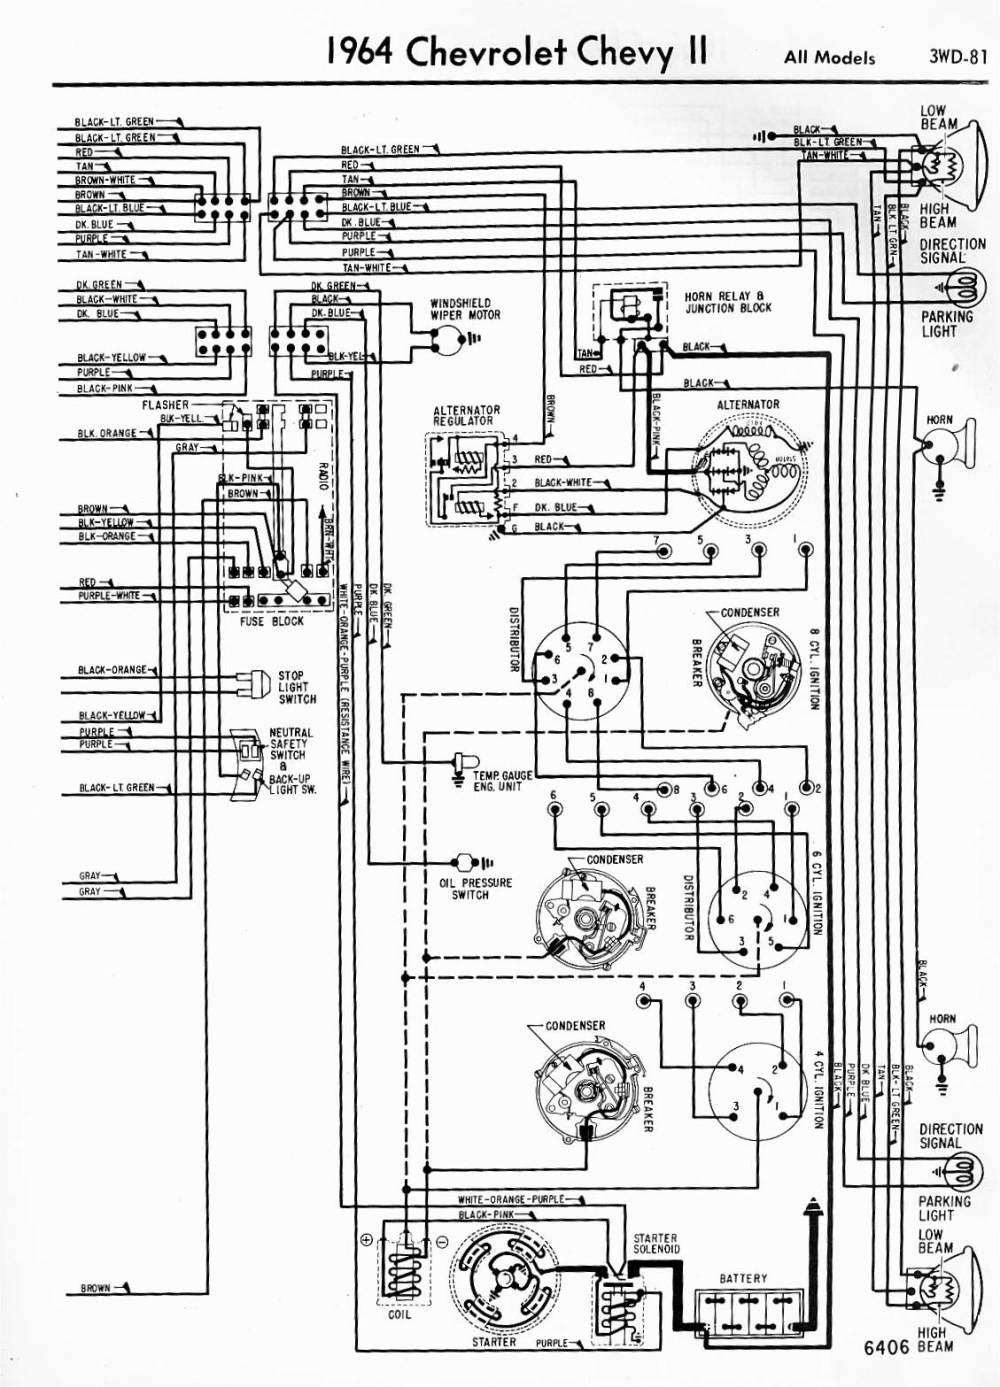 medium resolution of chevrolet cruze diagram wiring schematic 1964 chevy ii all models right 16o